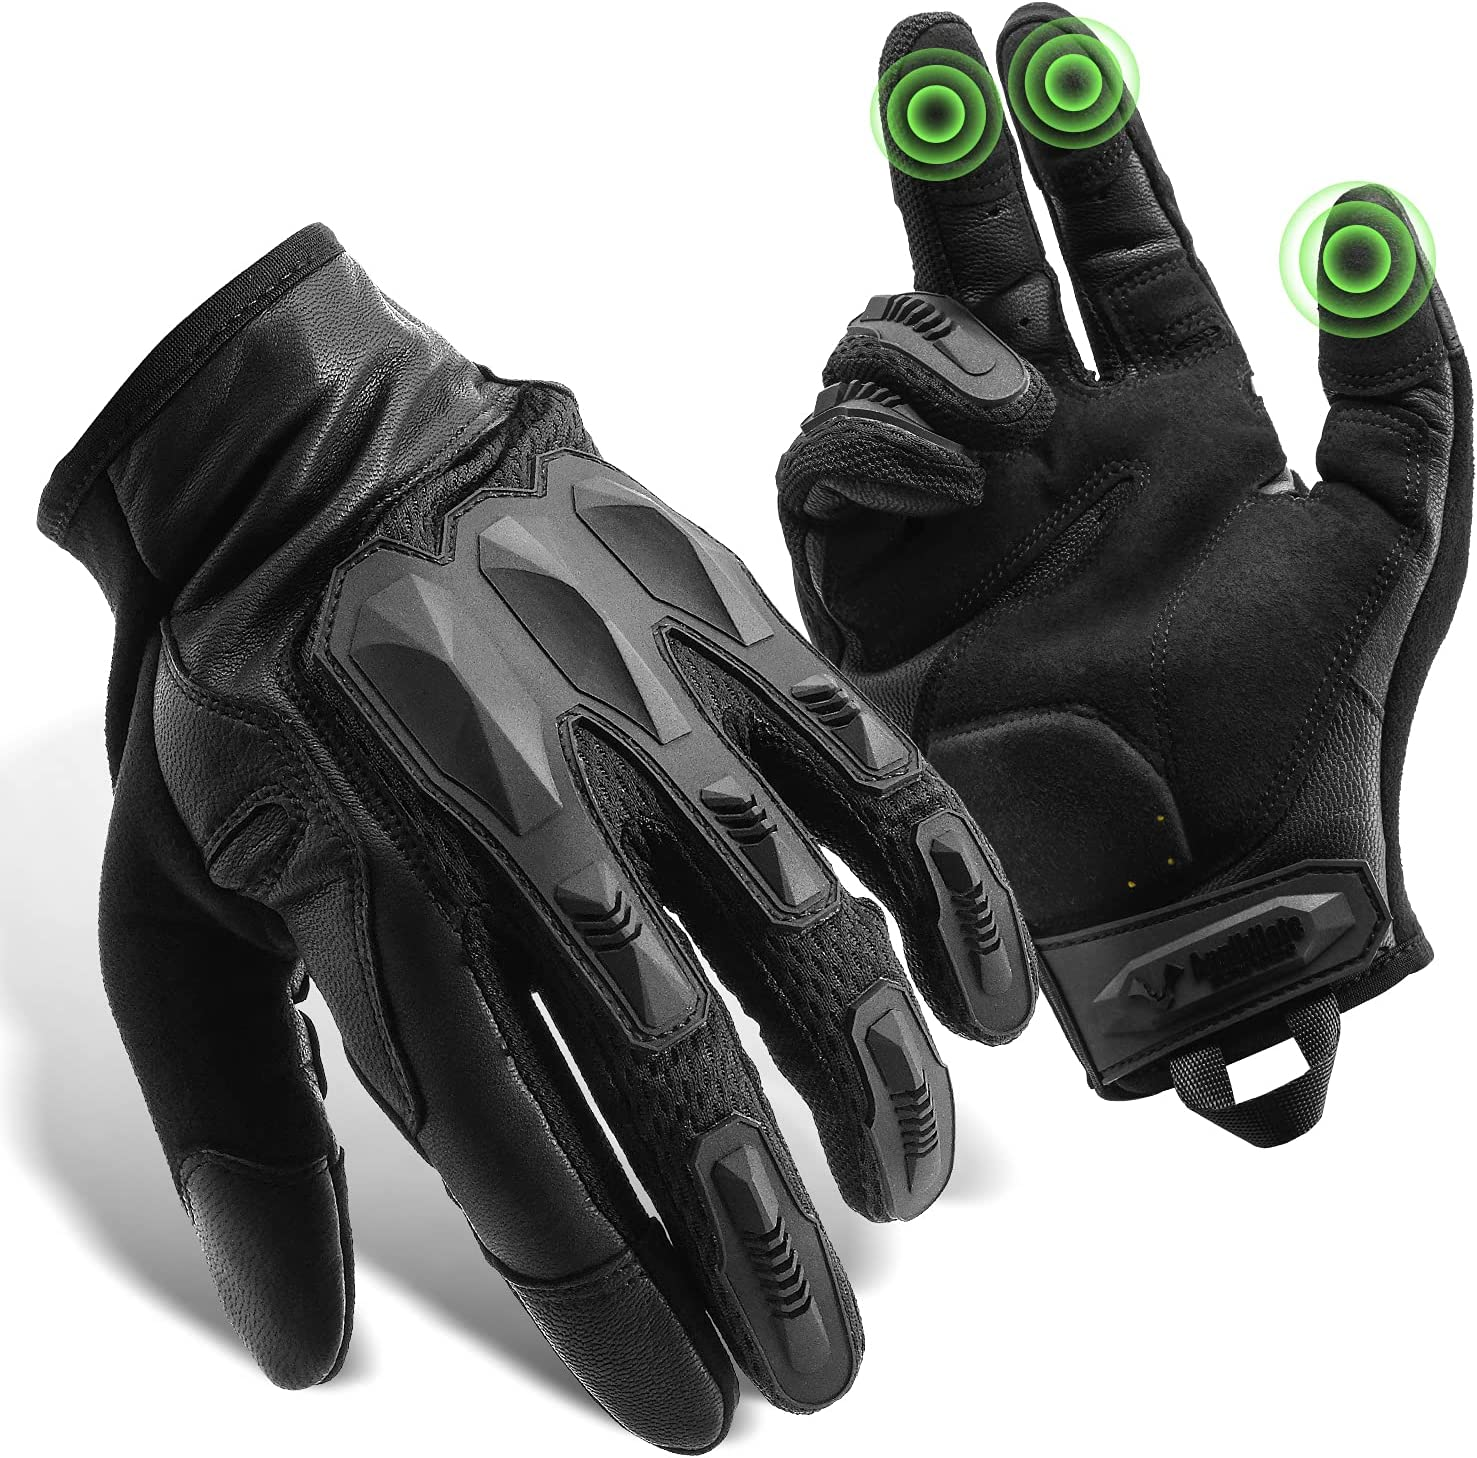 GRAMFIRE Tactical Gloves Selling and selling TPR Large special price Protective Military Knuckle Police